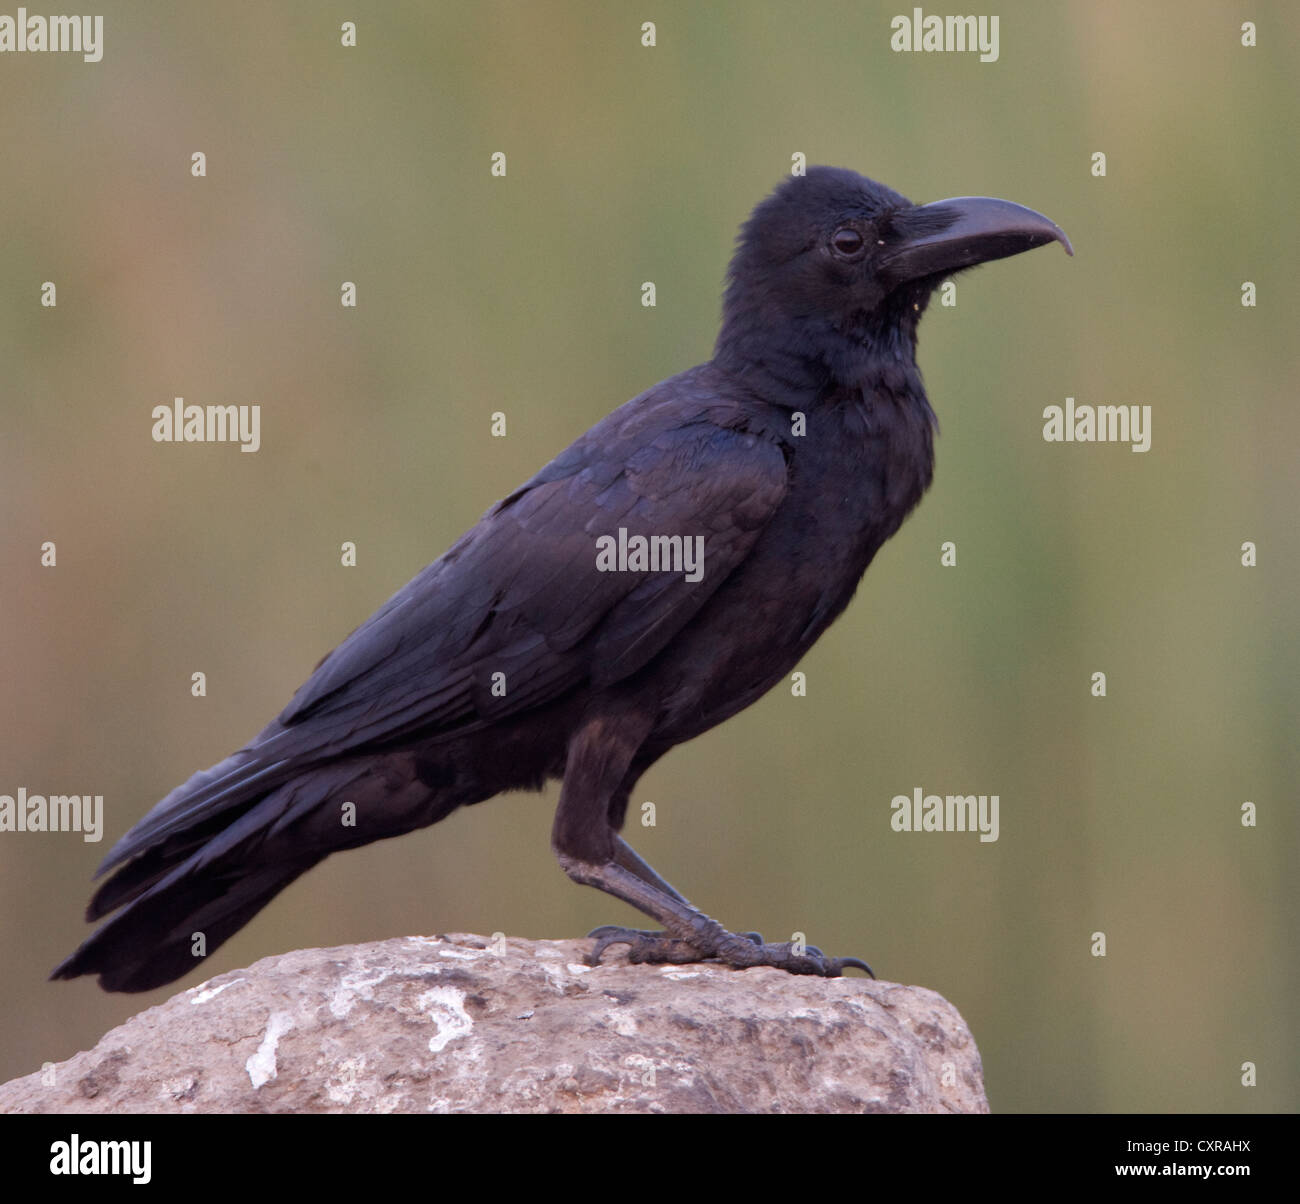 The Jungle Crow perched on a stone at the now ravaged Uran , a haven for migratory birds in Navi Mumbai , near Bombay - Stock Image